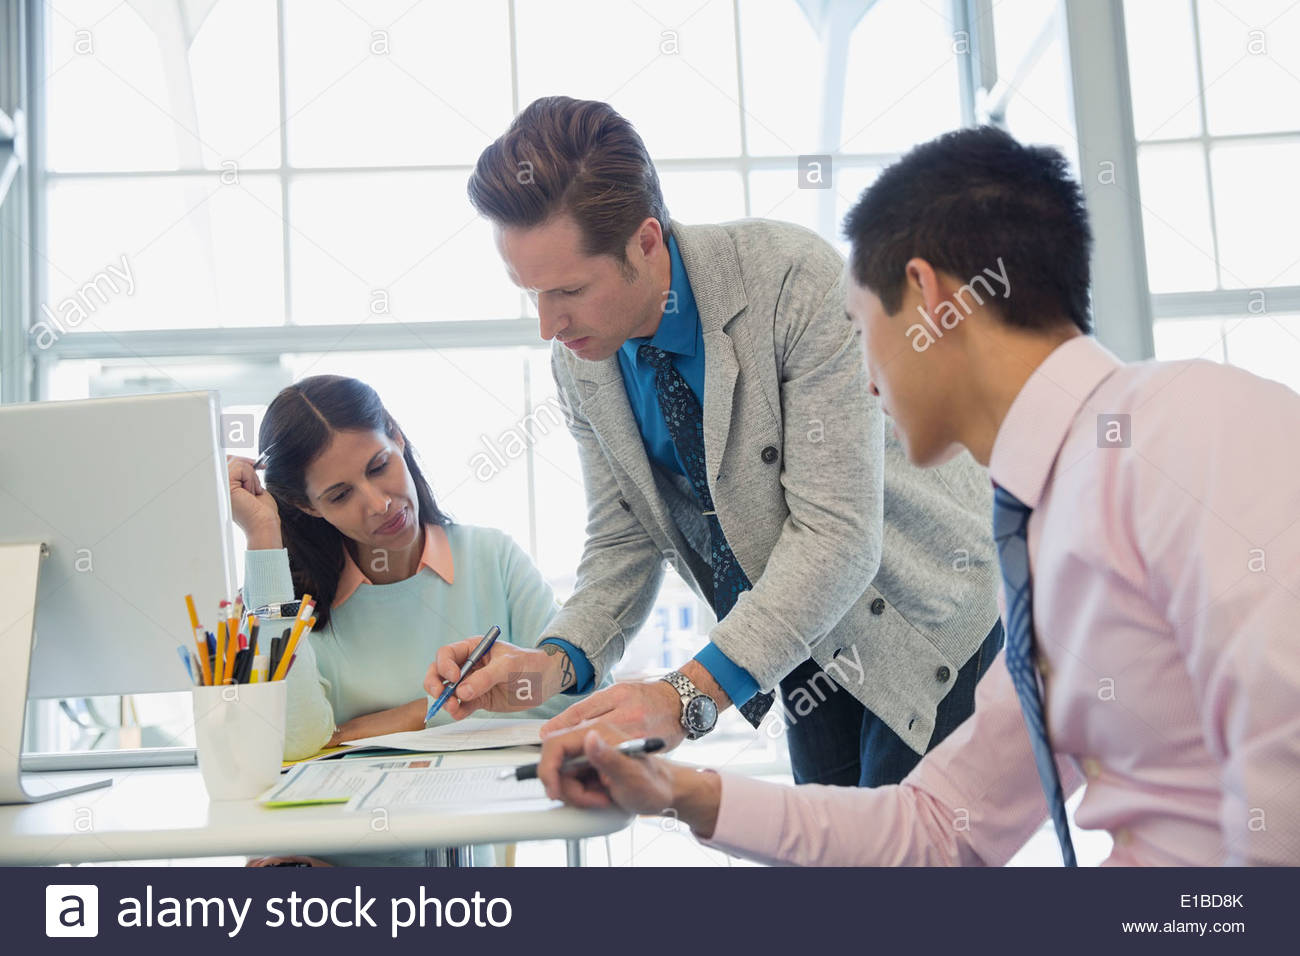 Business at desk in office Photo Stock